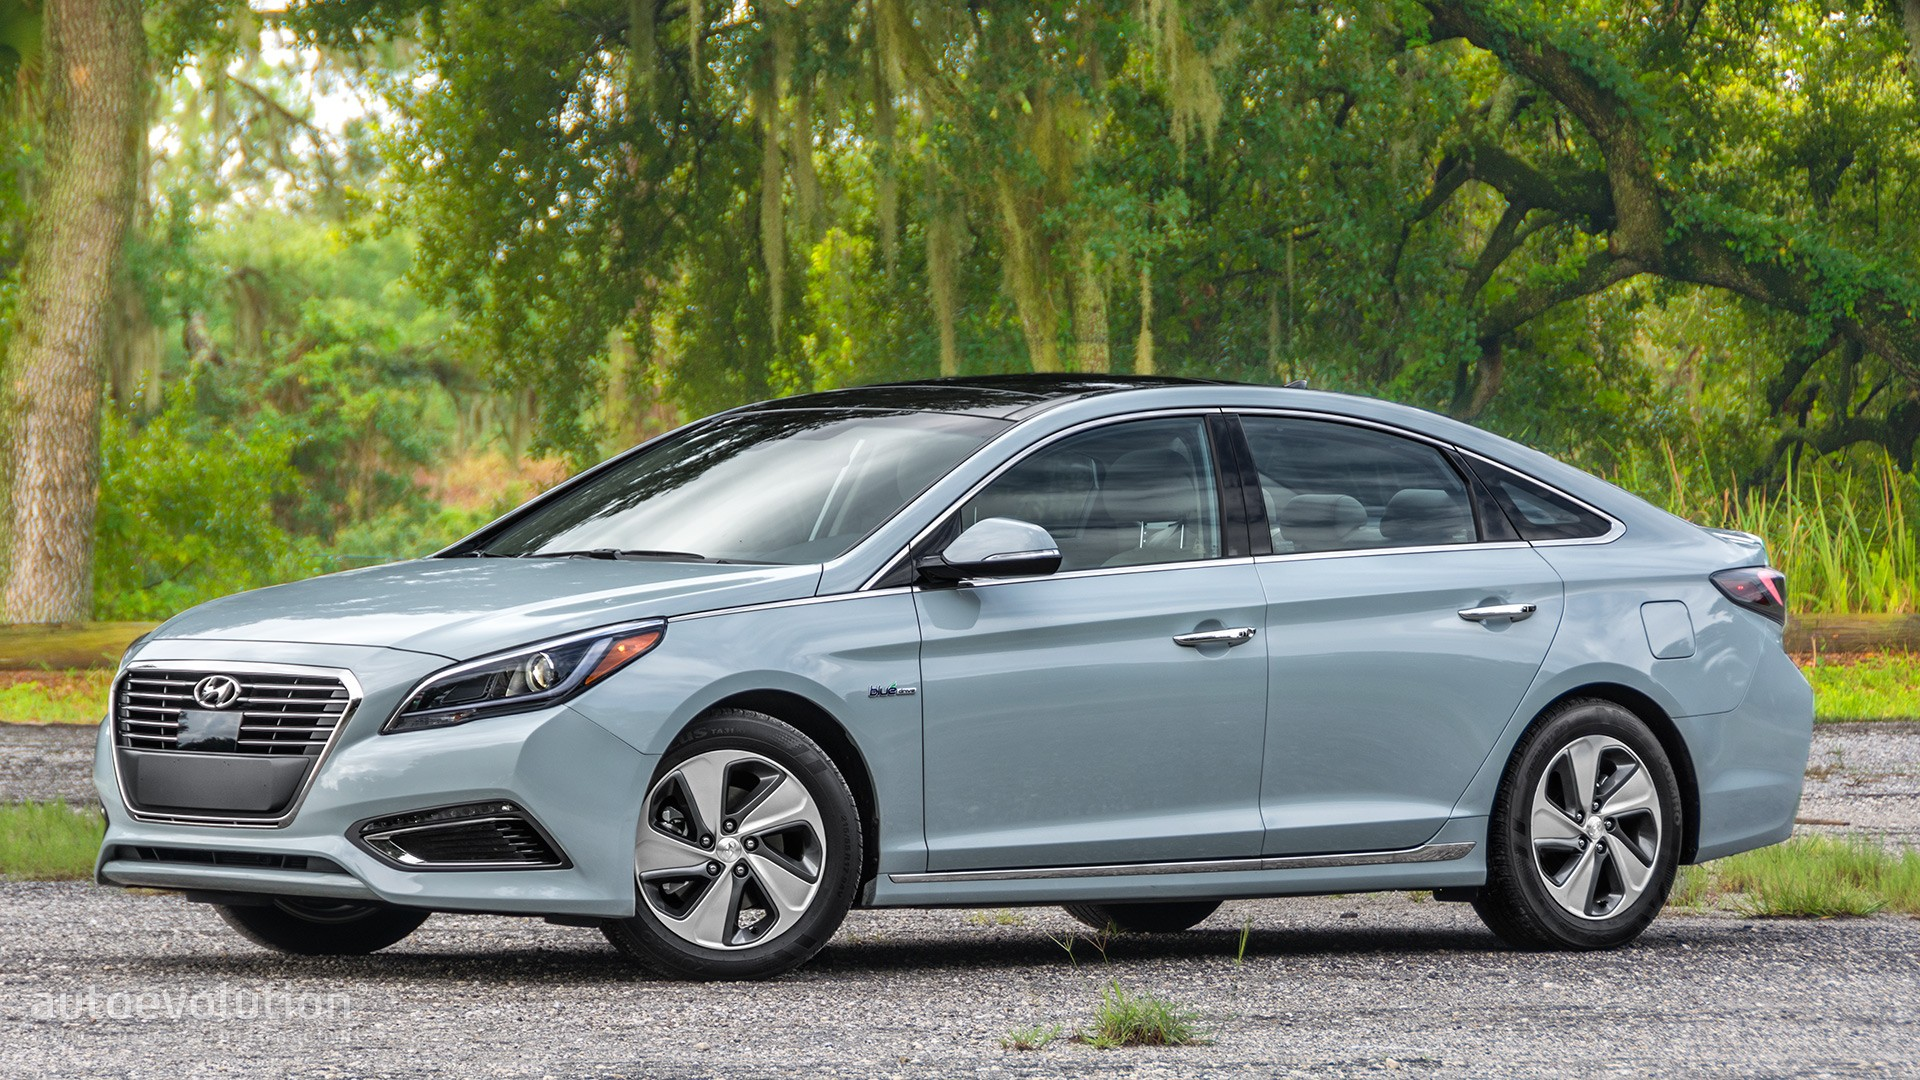 2016 Hyundai Sonata Hybrid Review Autoevolution